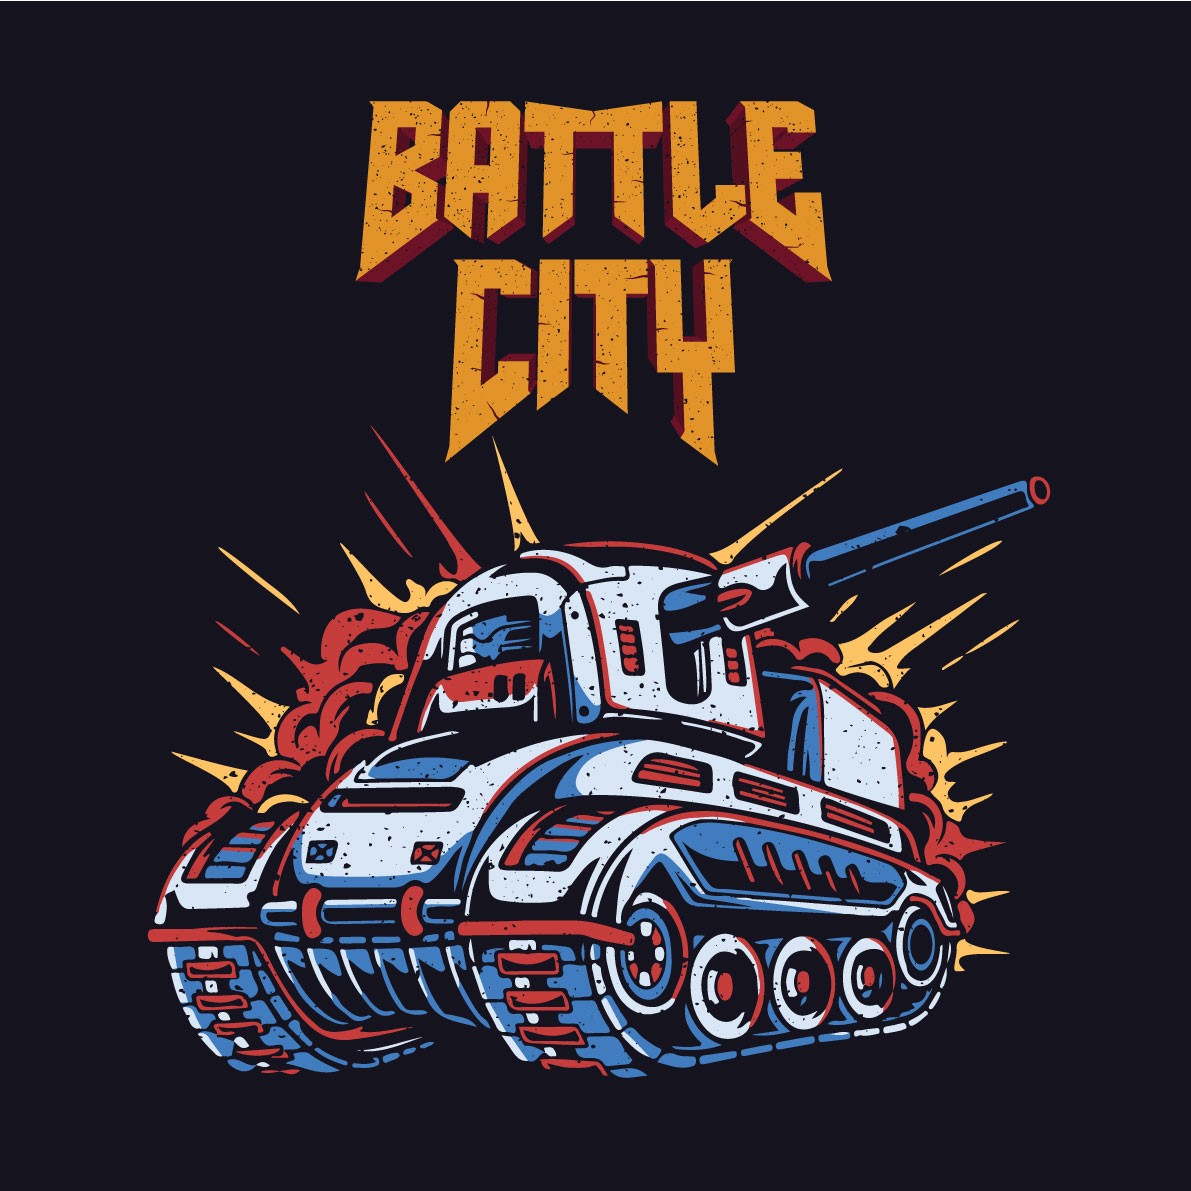 Battle City Press Start